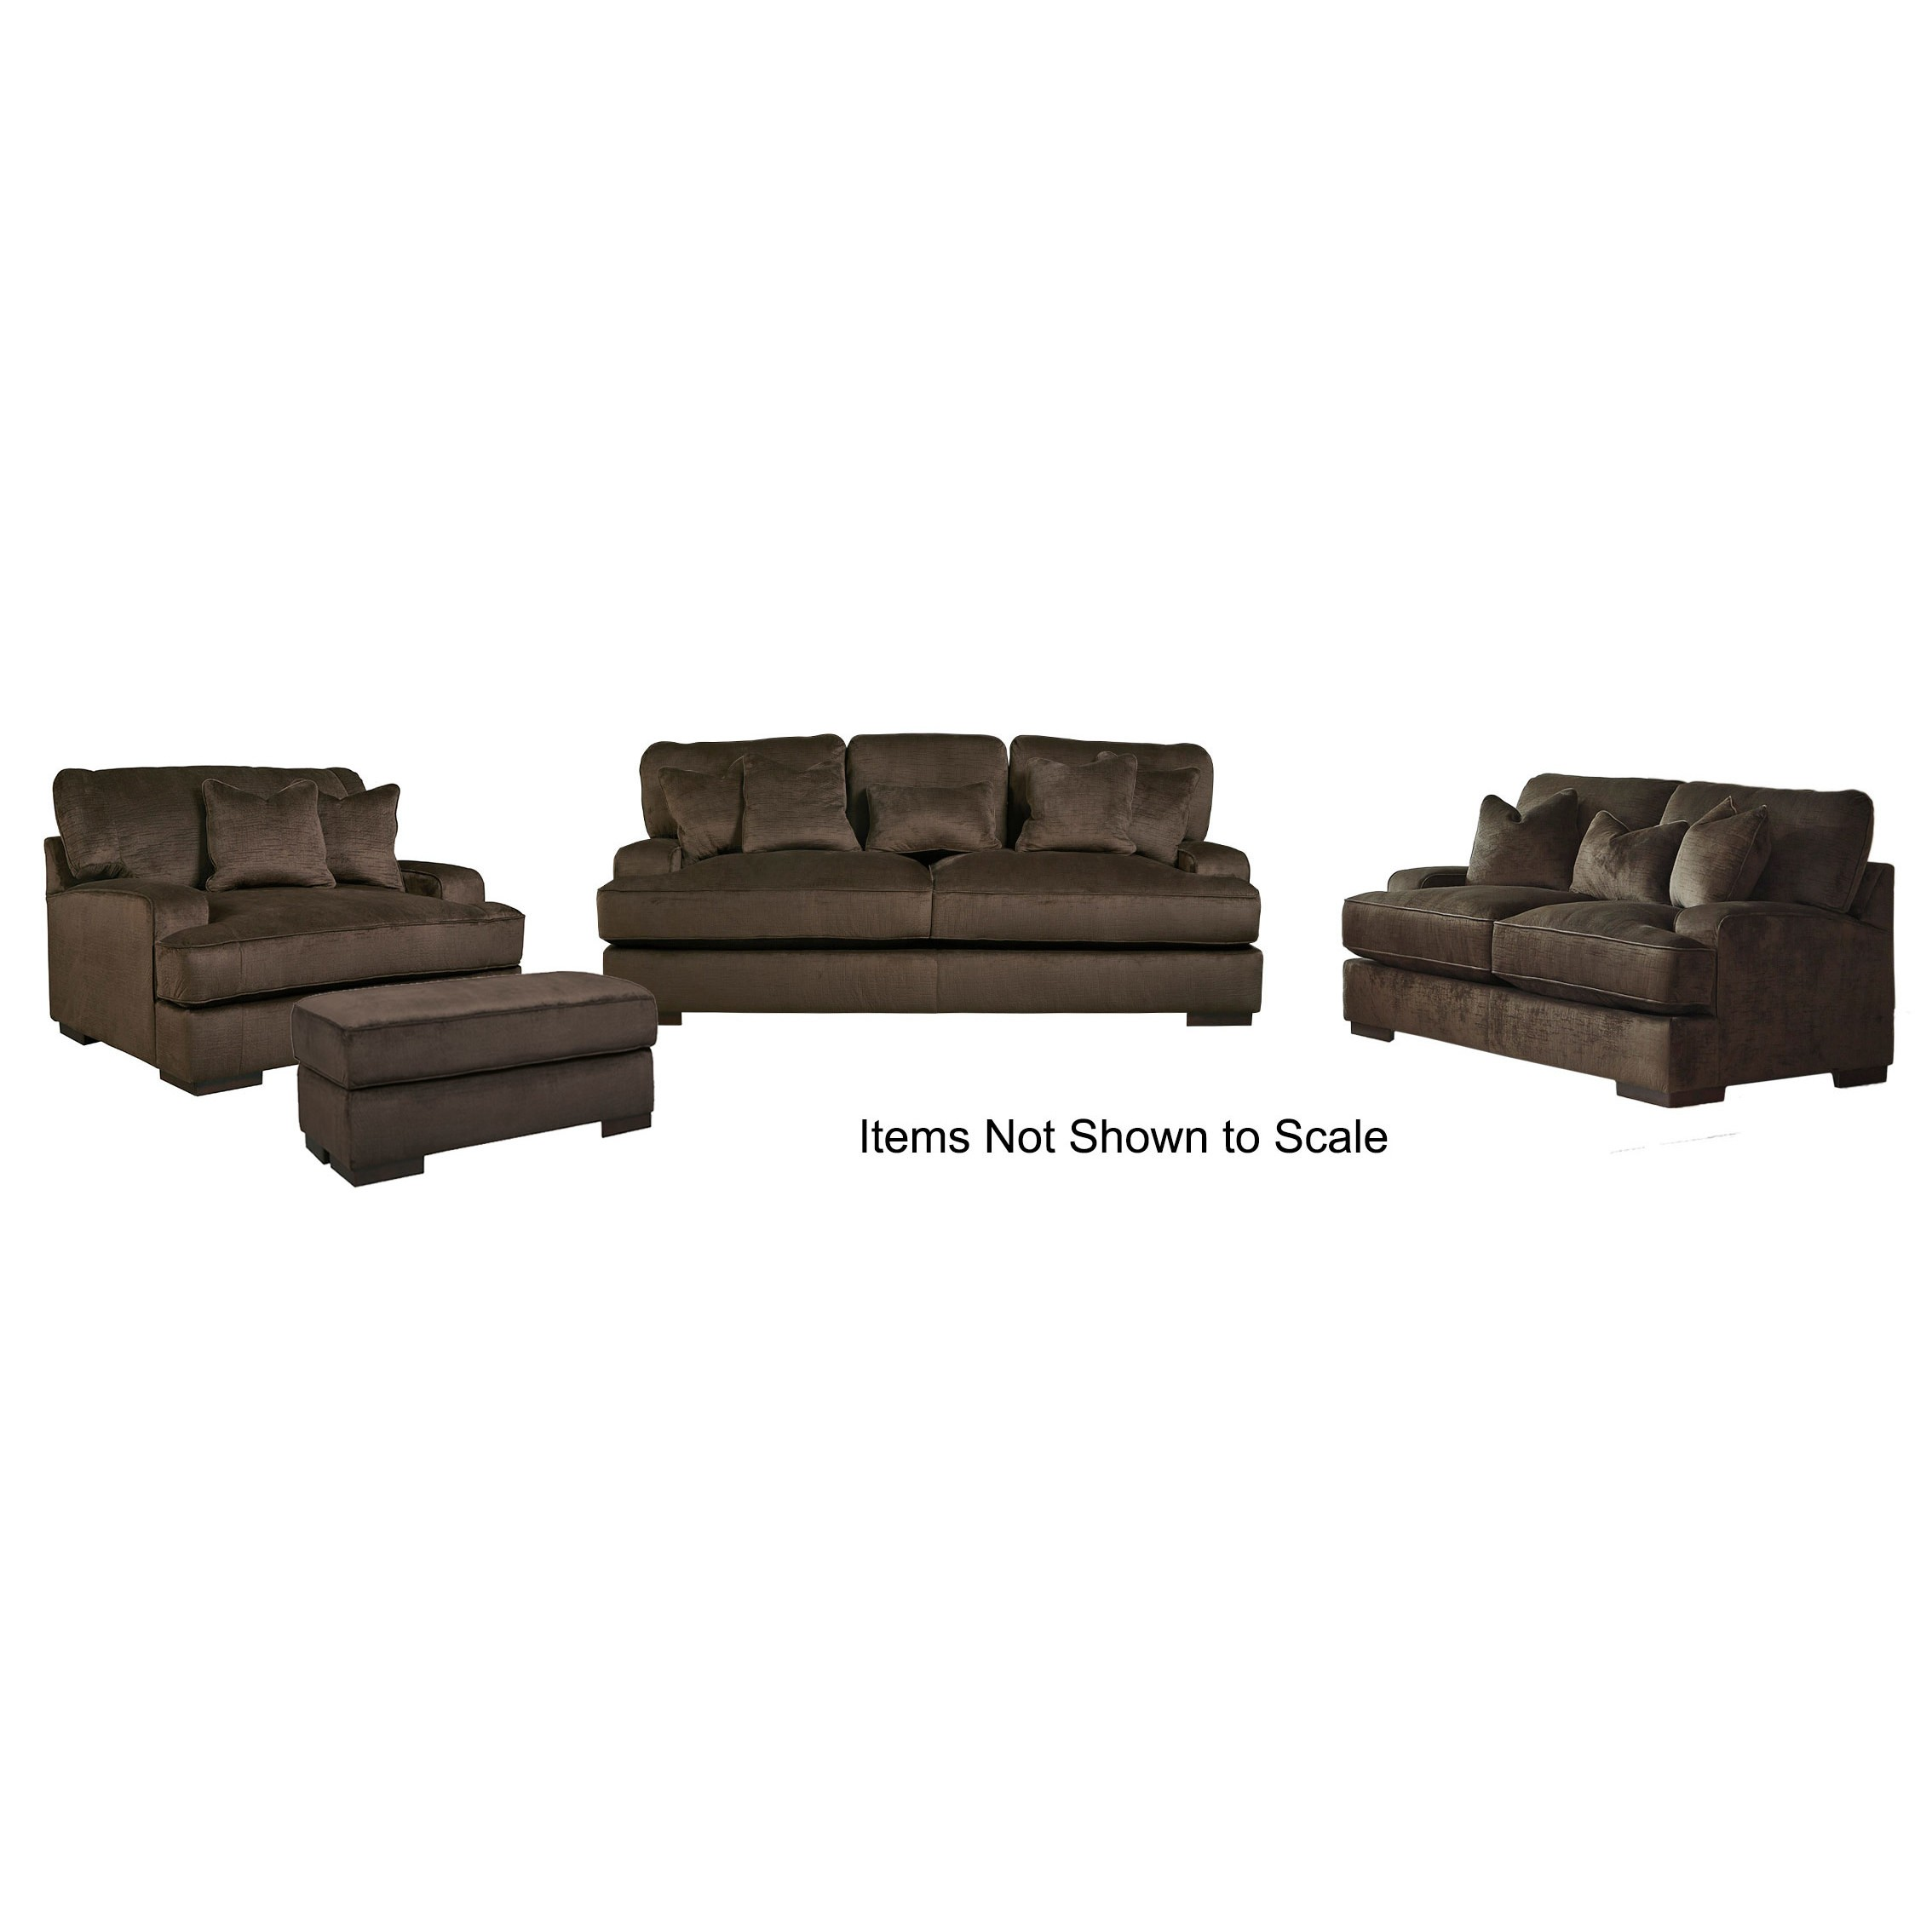 Bisenti 65306SLCO 4-Piece Living Room Set with Sofa Loveseat Chair ...